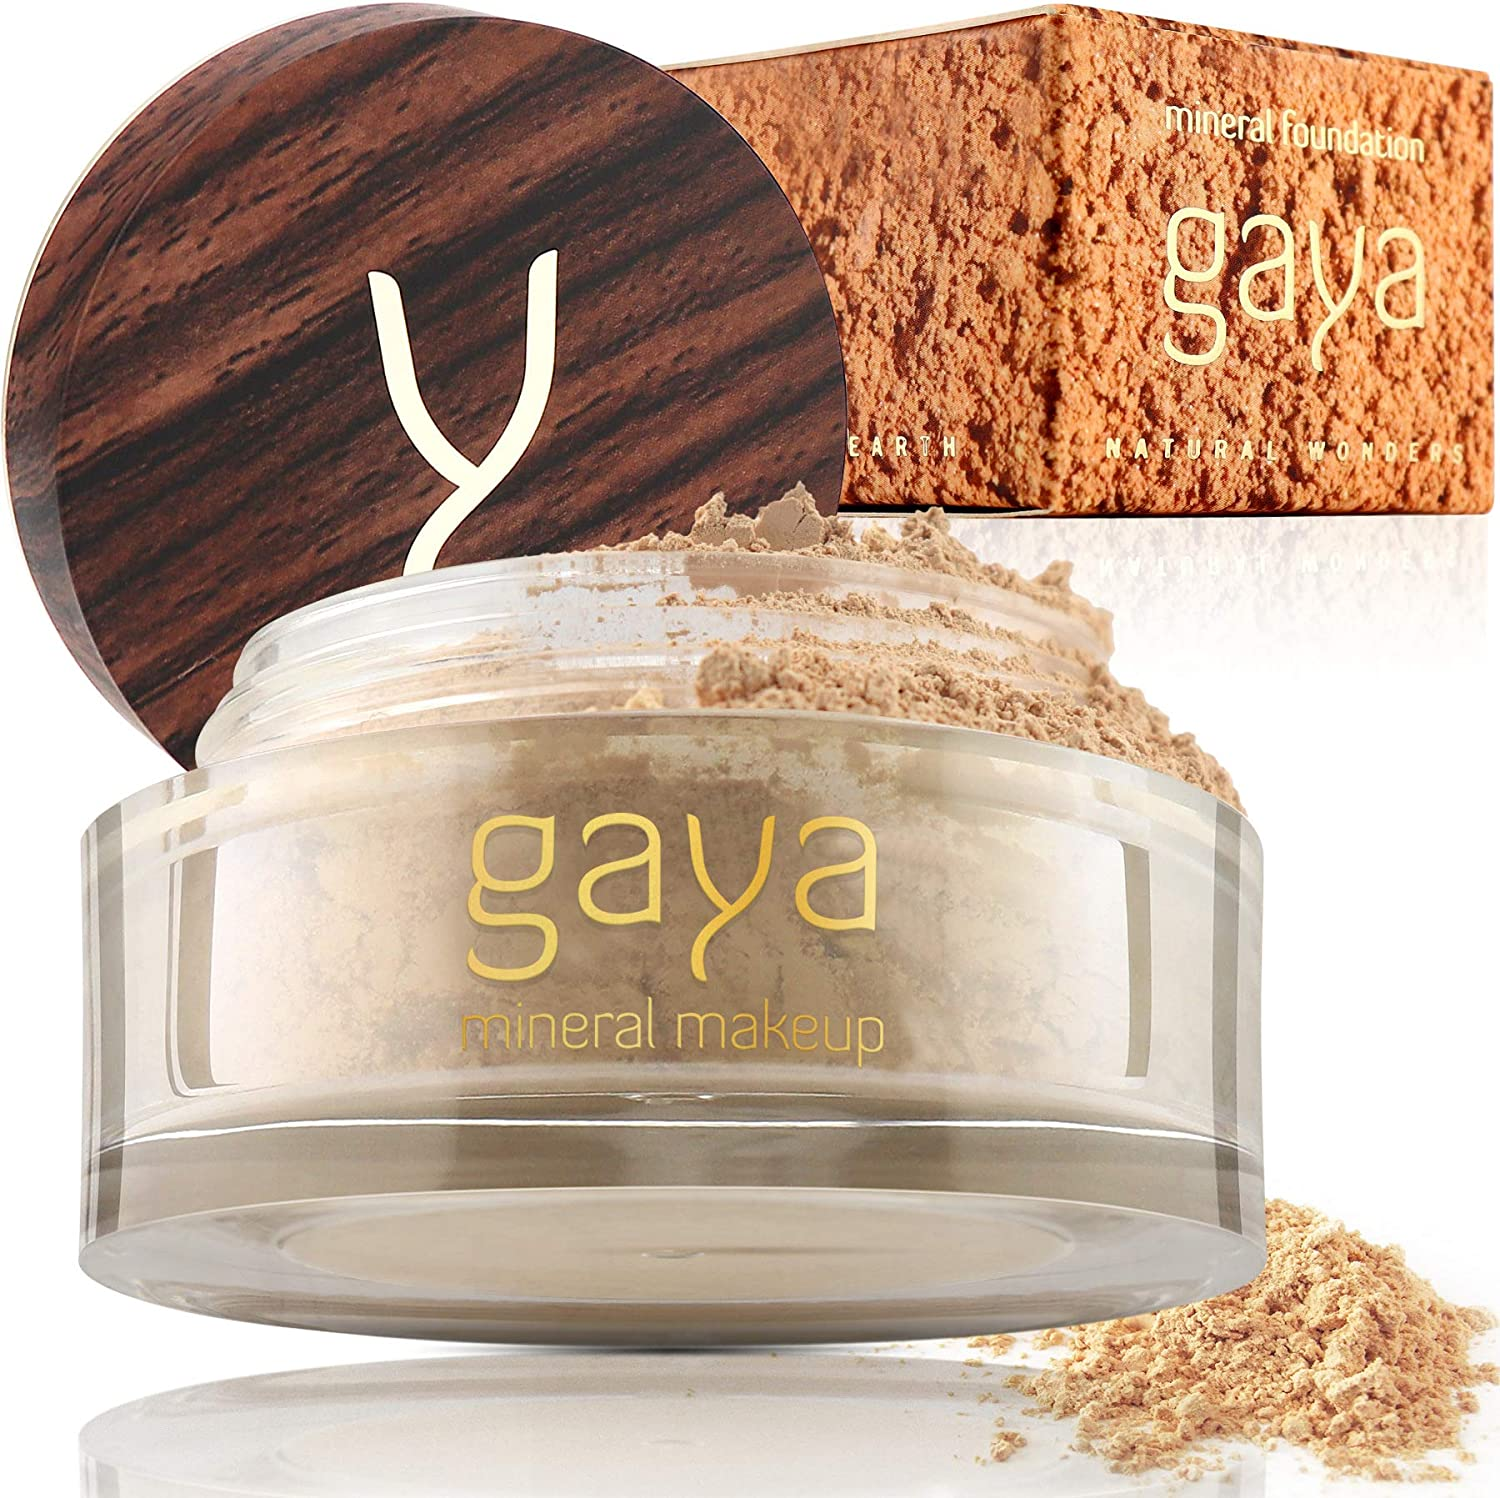 Gaya Cosmetics Mineral Foundation Full Coverage - Professional Vegan Natural Make up Face Powder Foundation with Makeup Concealer For All Skin Types (MF1)